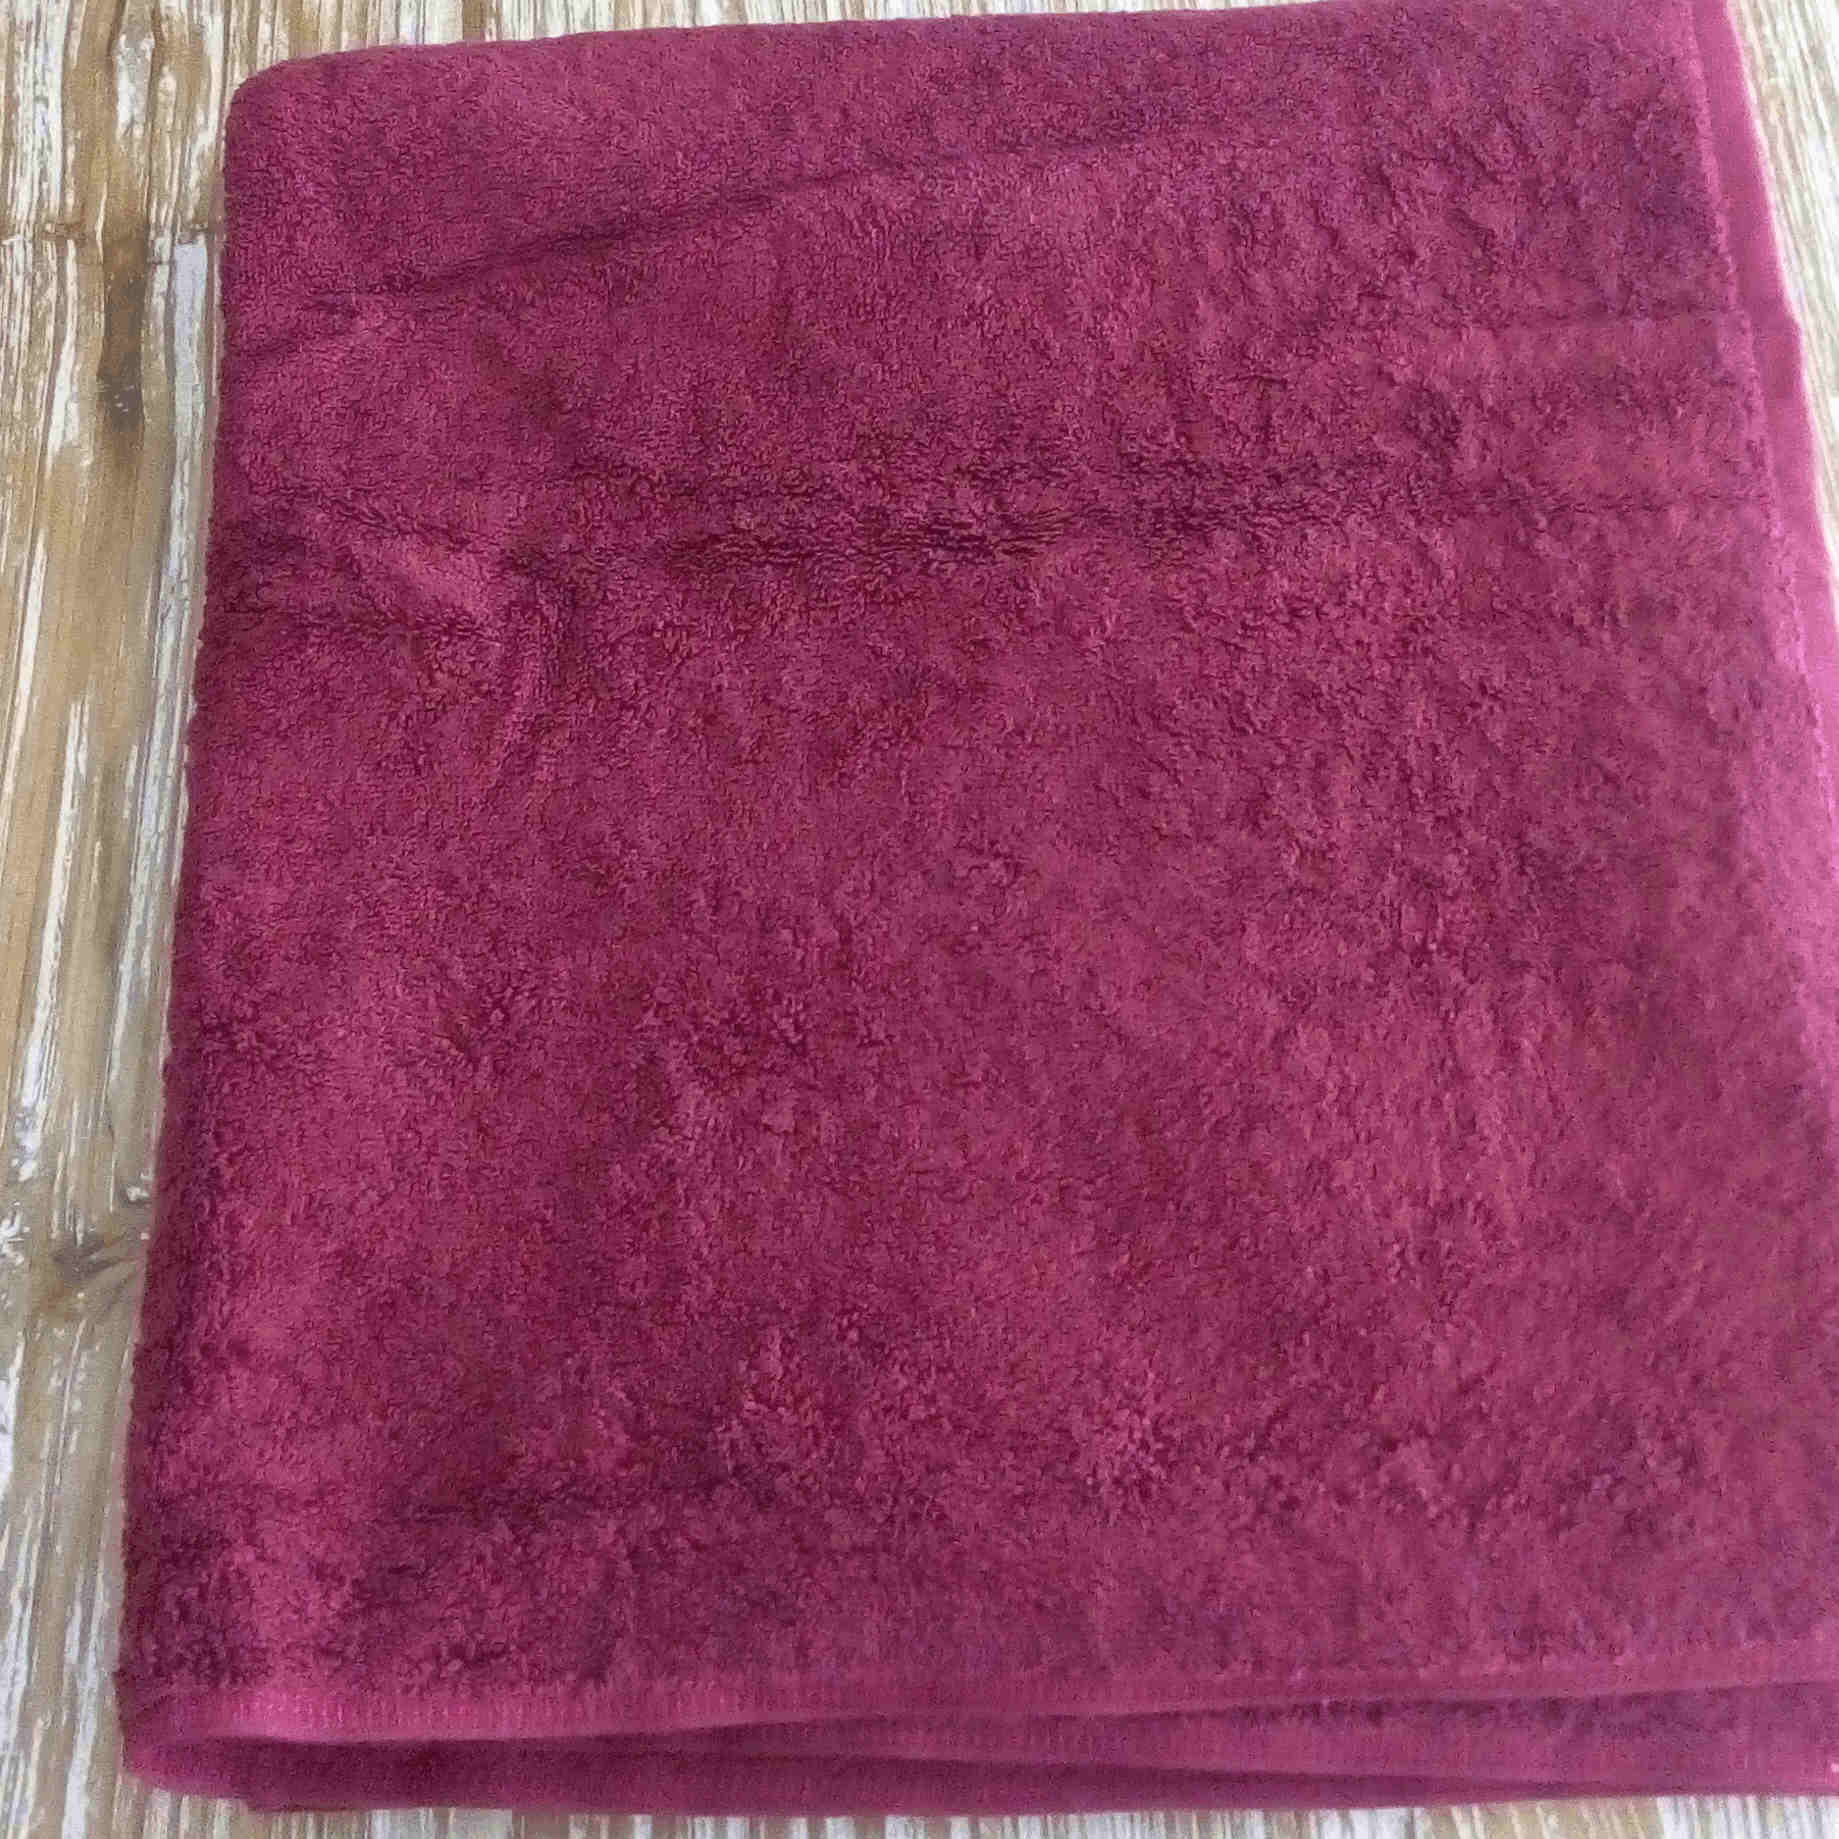 Medium Towel - Maroon - BaliOz